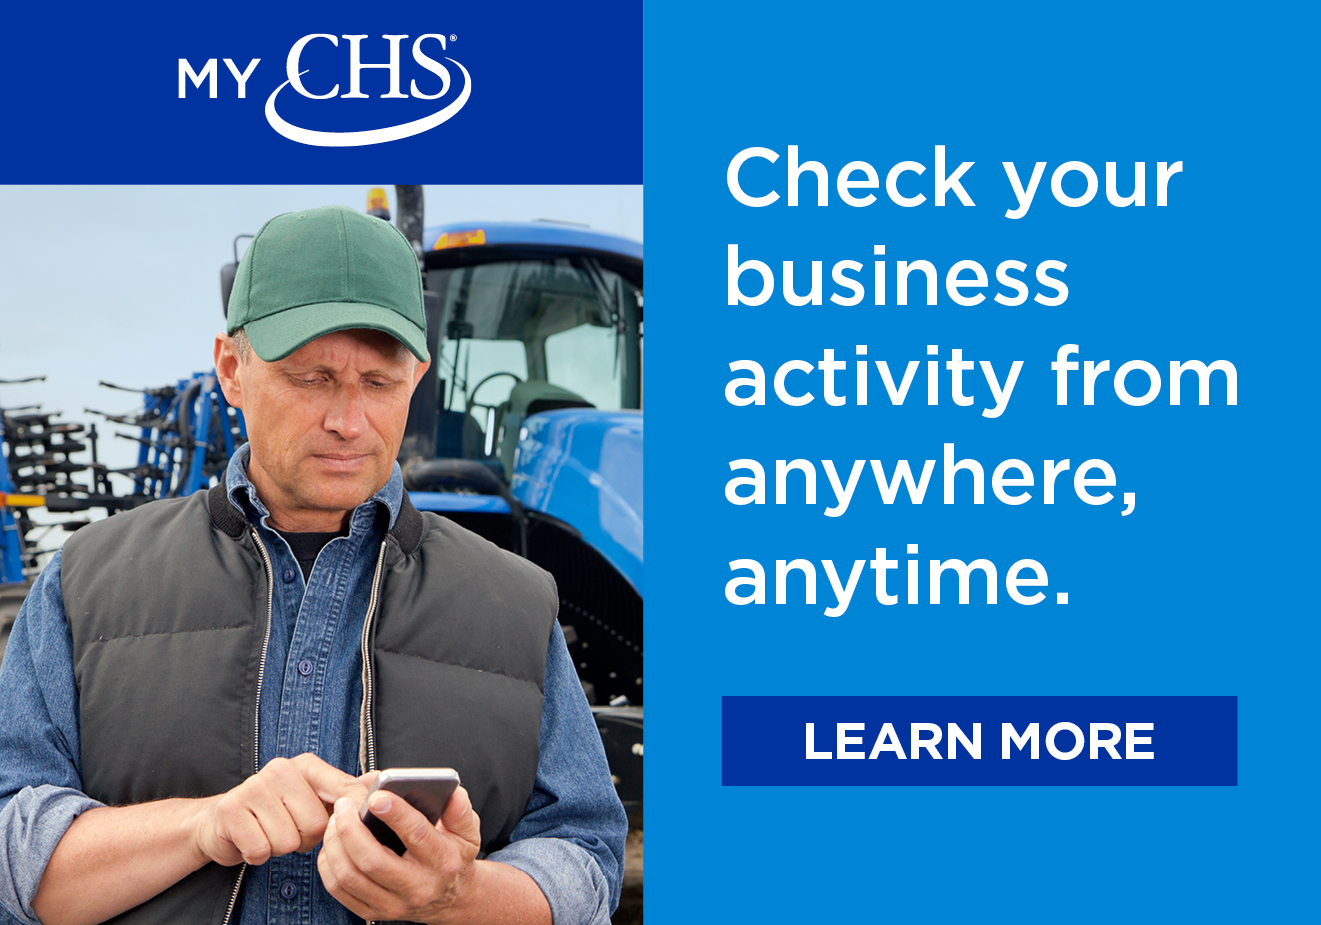 Check your business activity anywhere with the MyCHS App